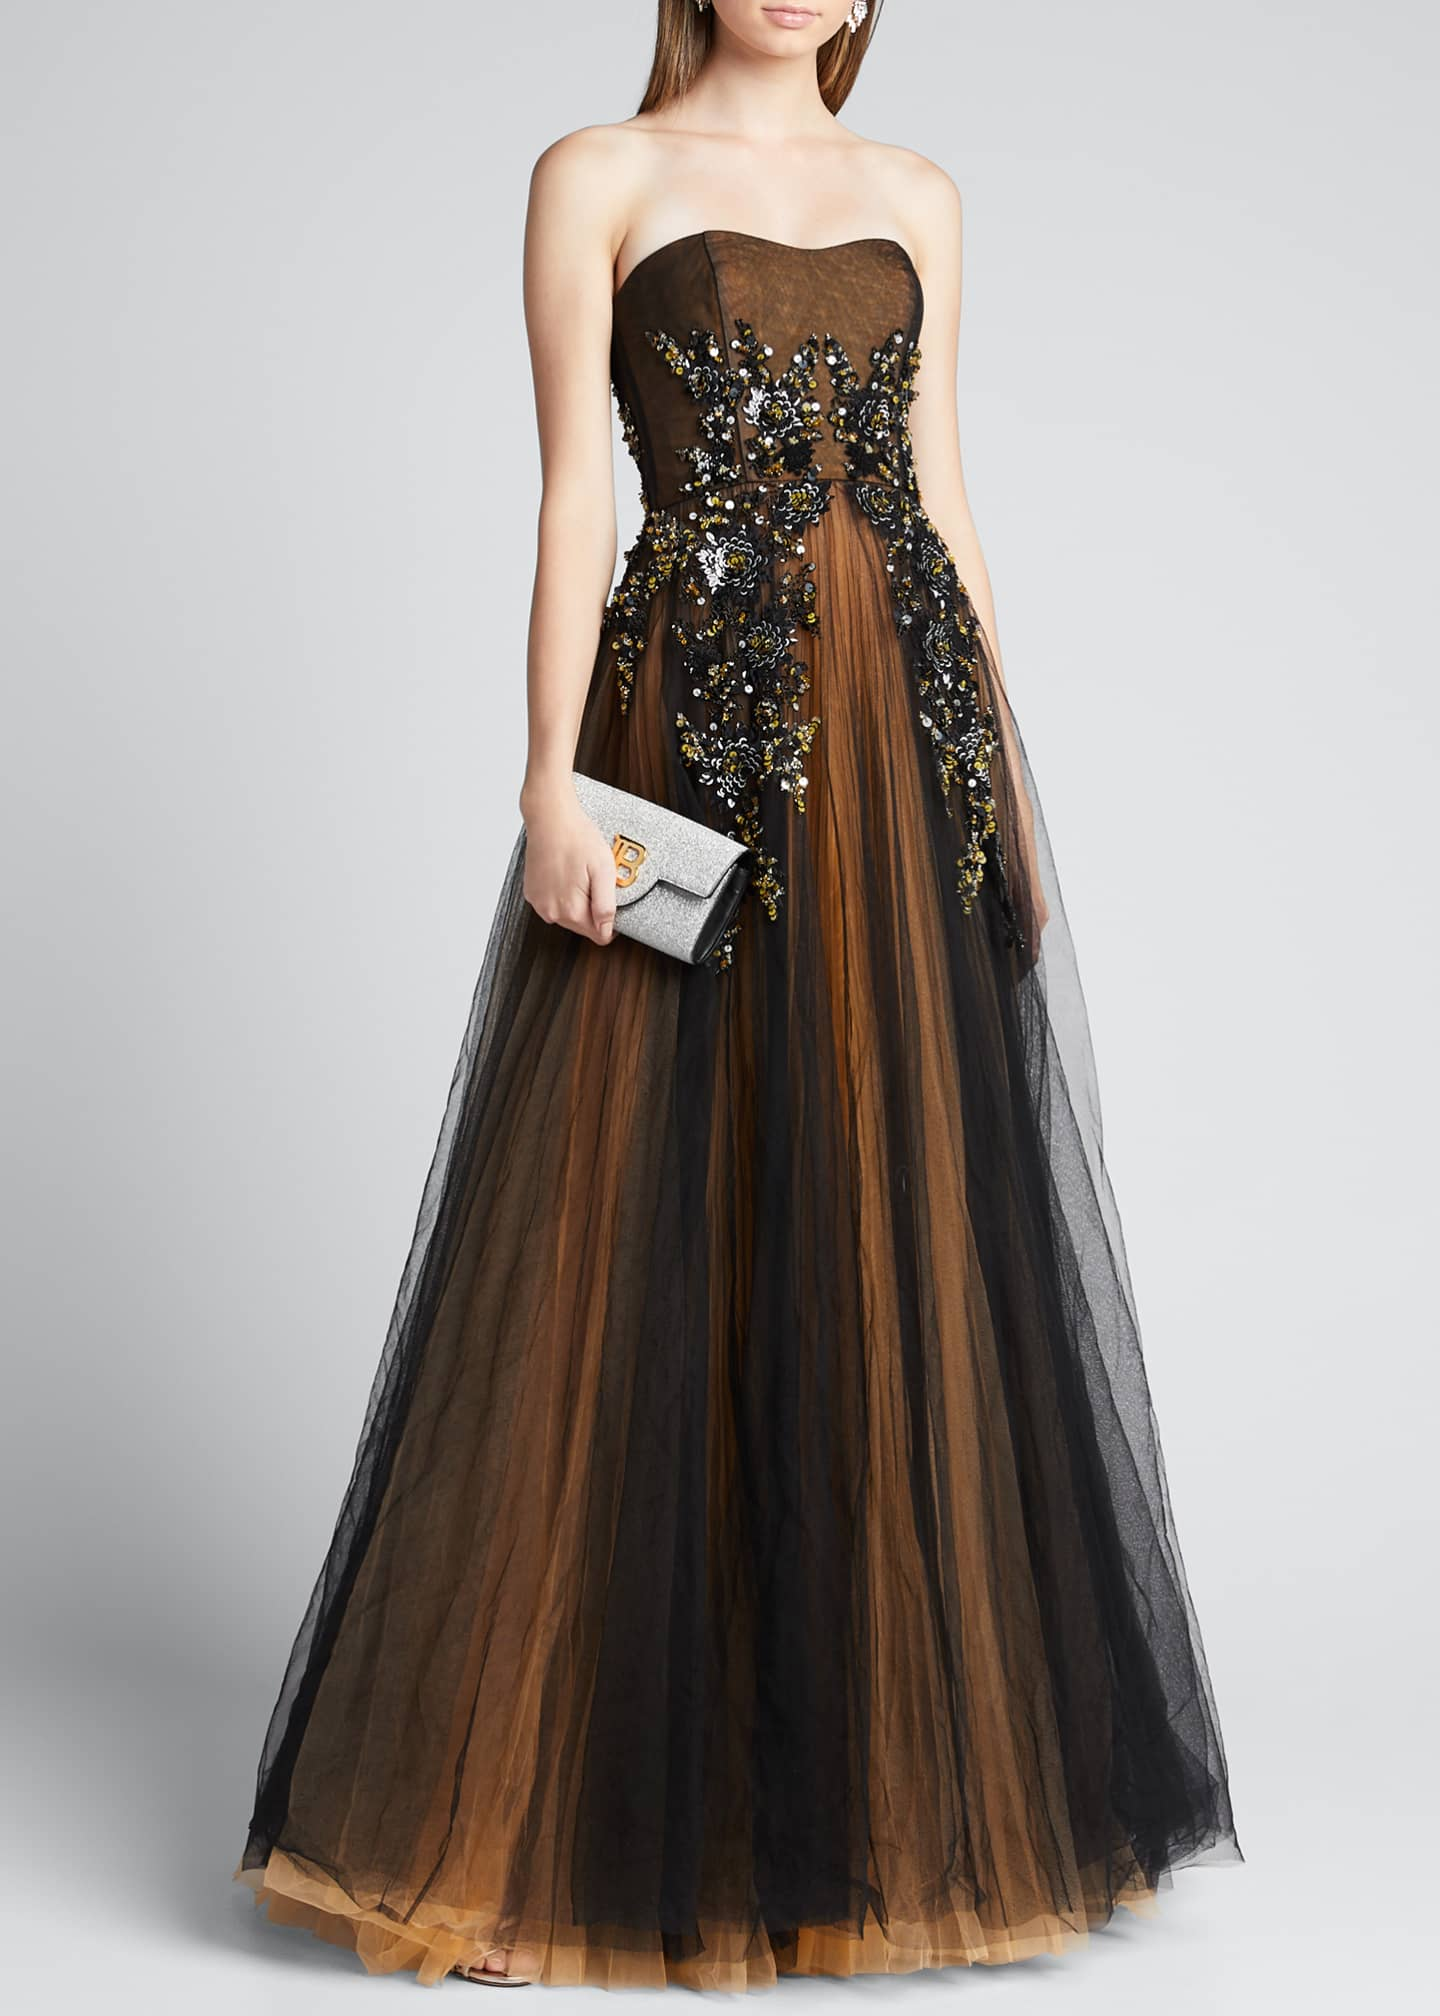 J. Mendel Strapless Embroidered Gown with Marigold Underlay